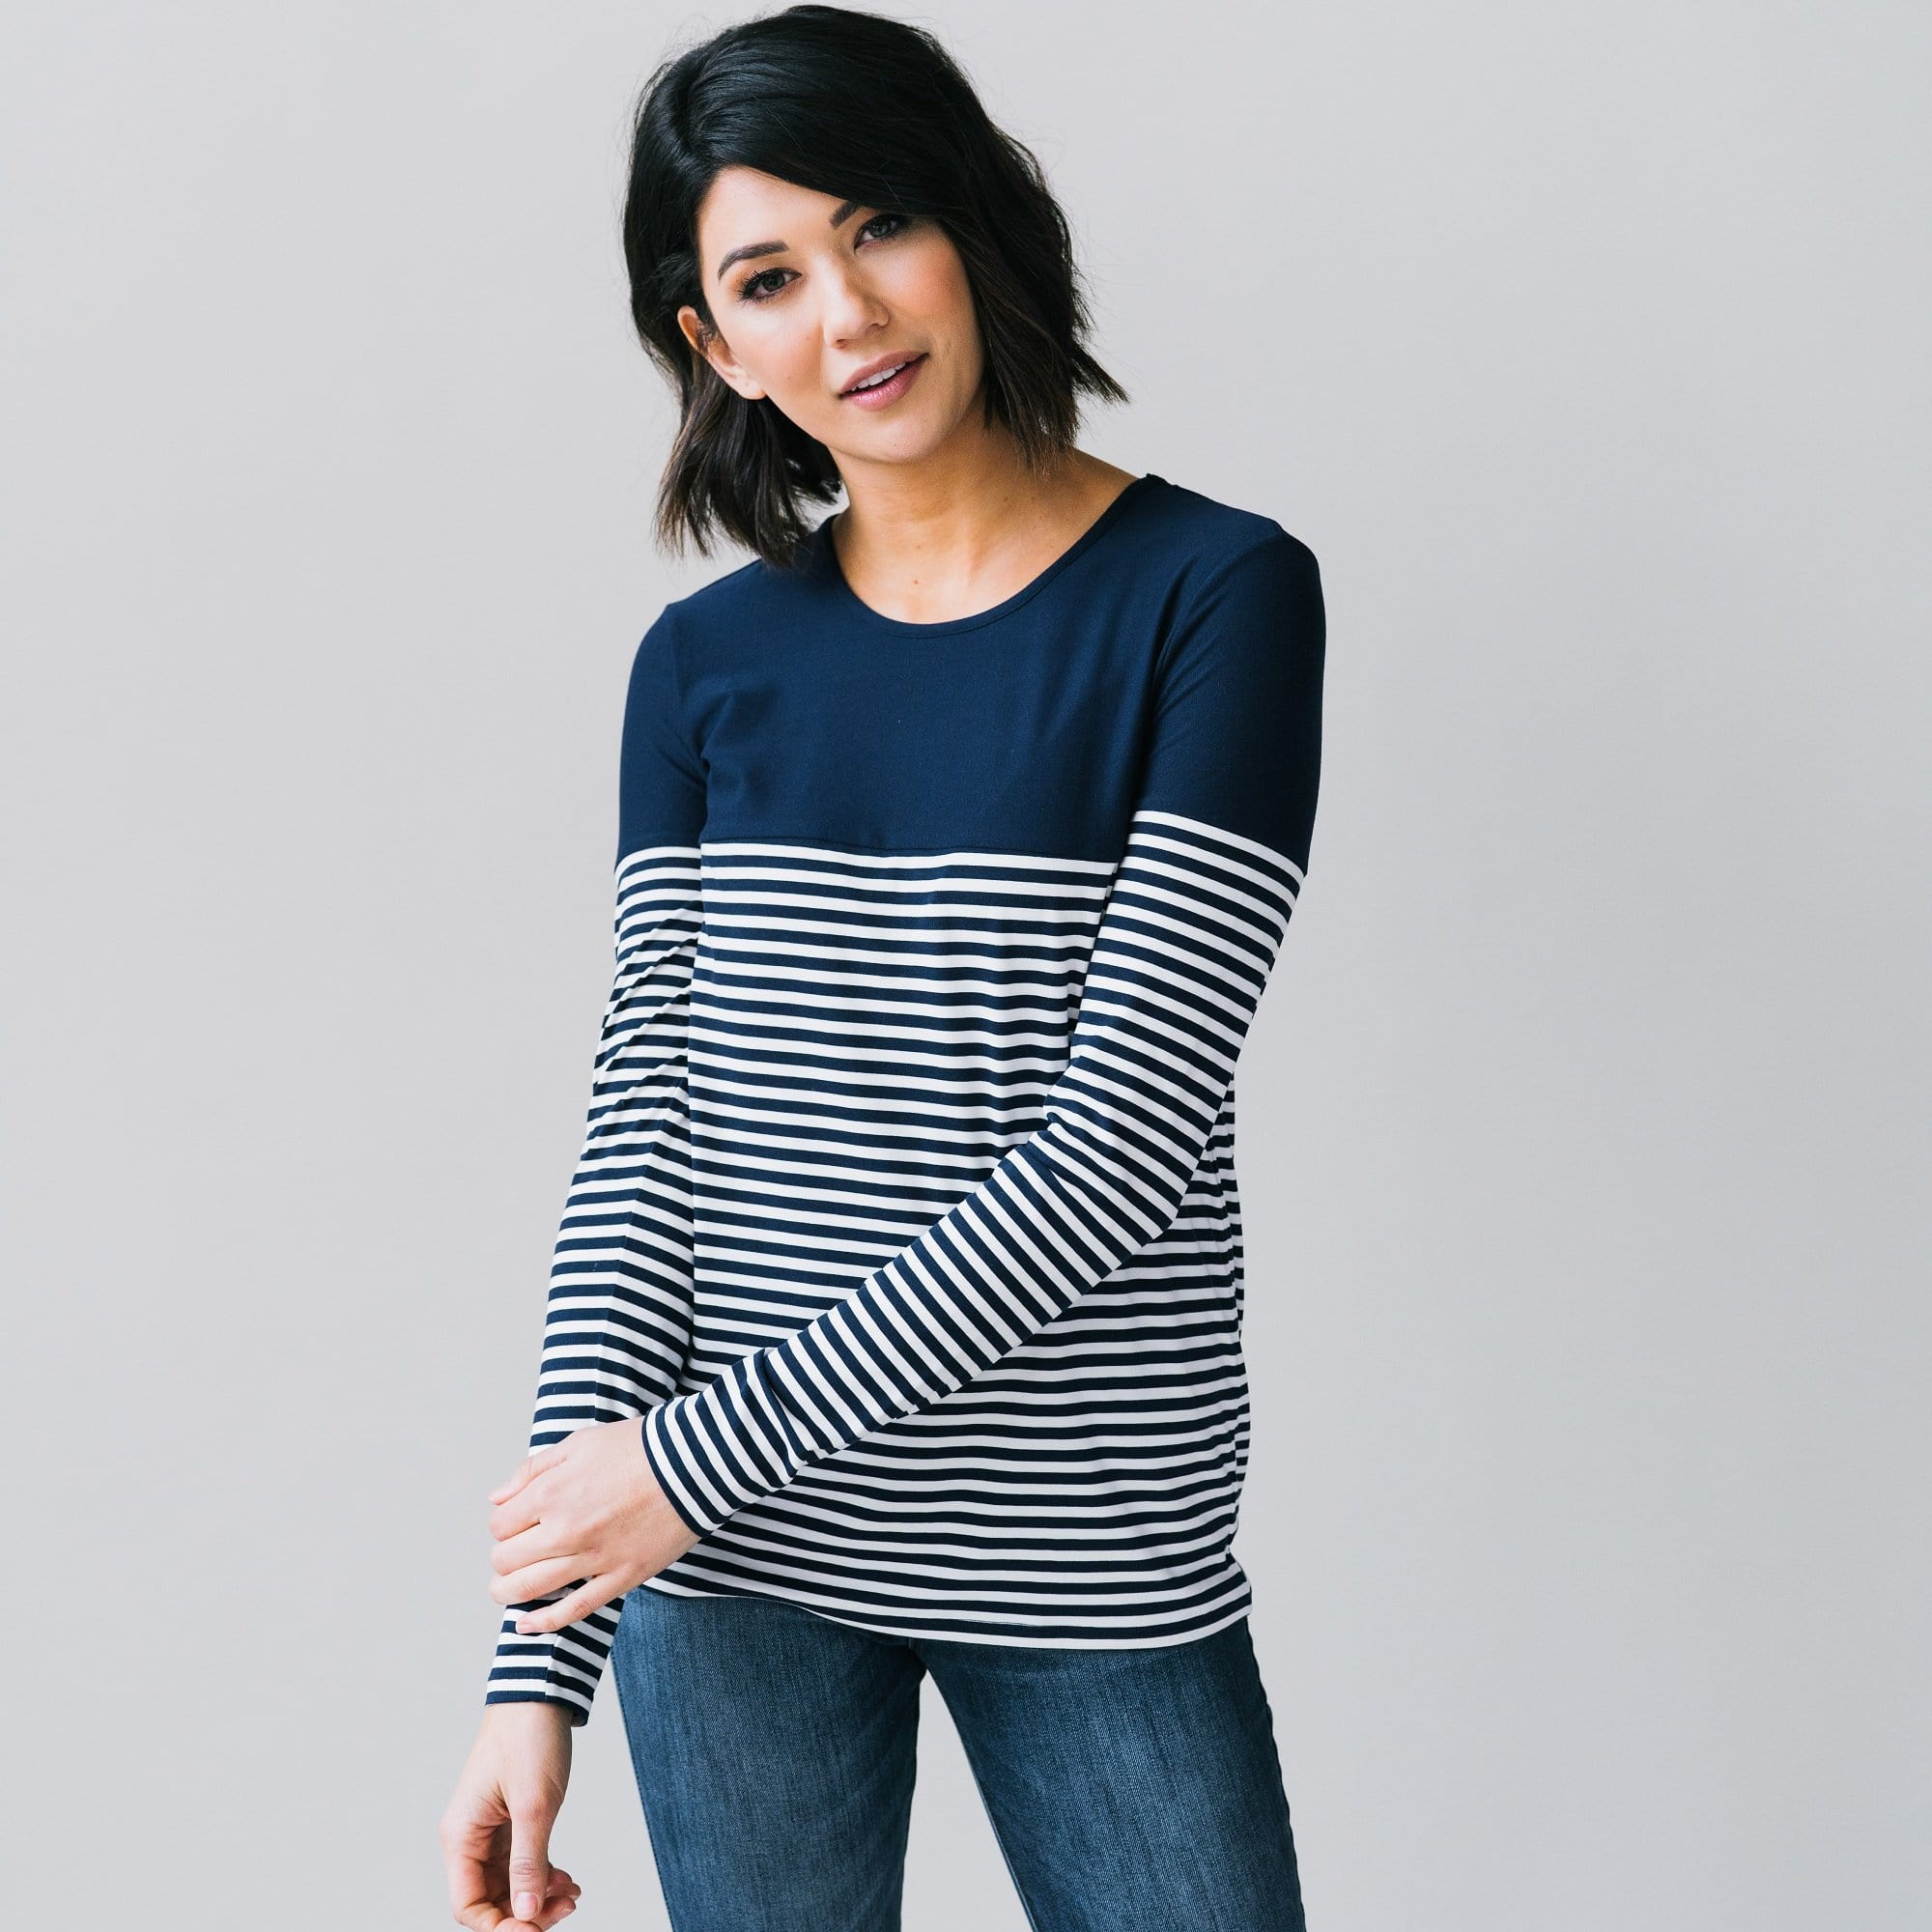 Stripe & Solid Tee